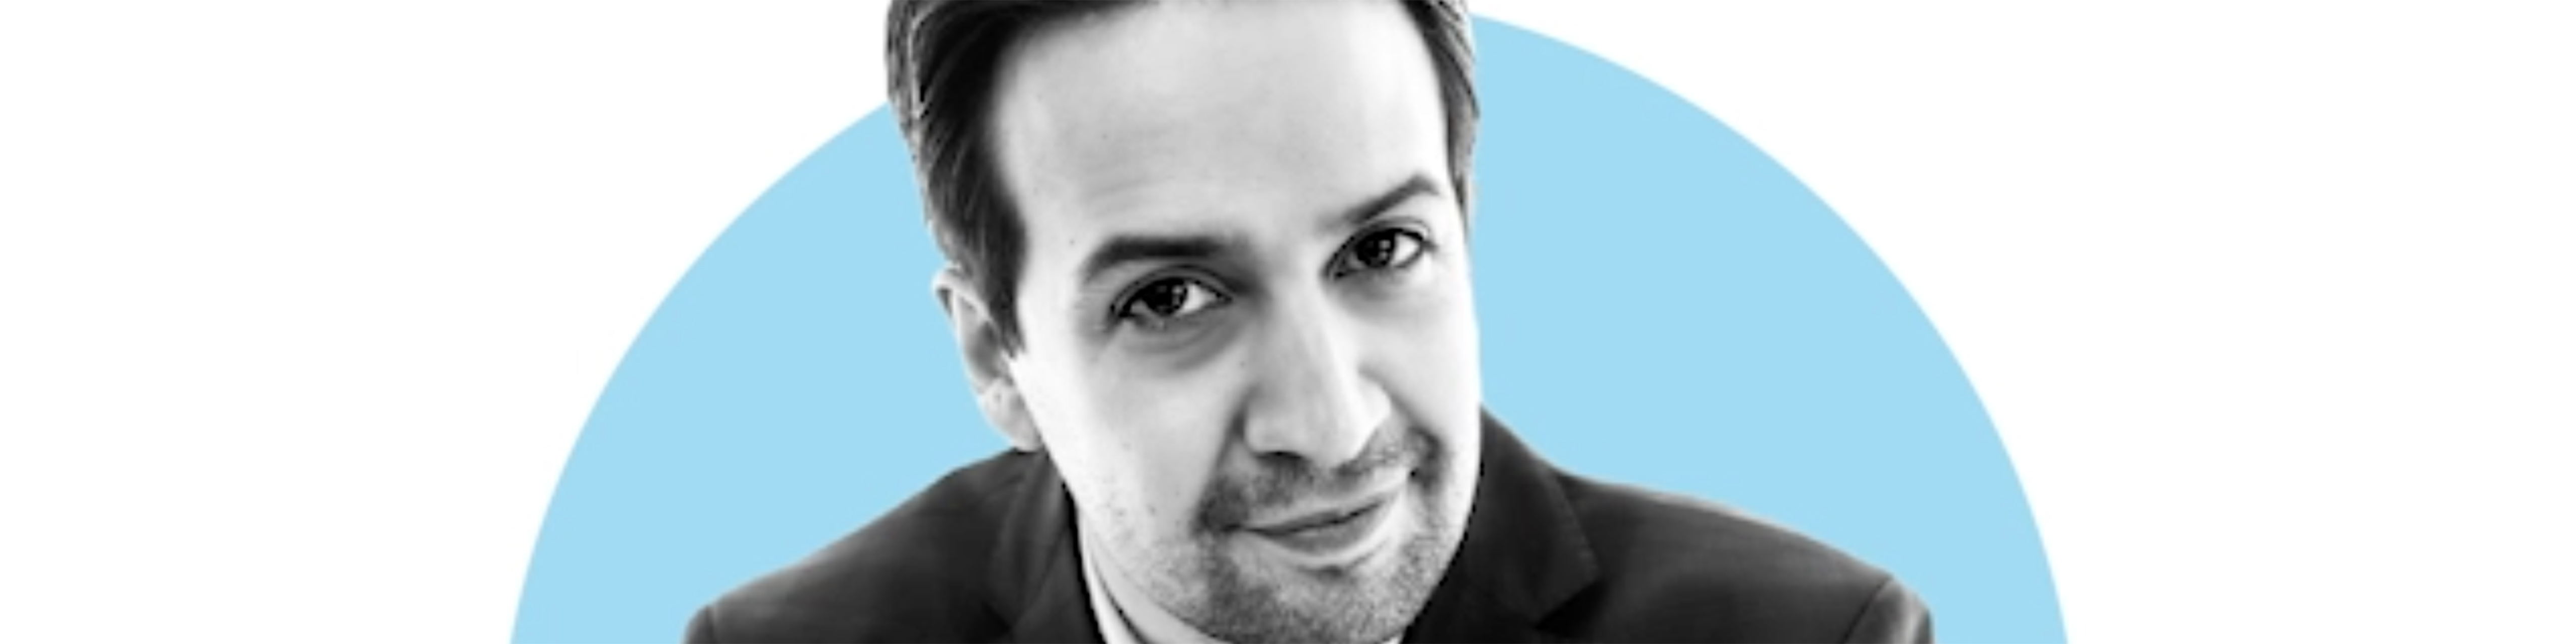 black and white screenshot of lin-manuel miranda on a blue and white background